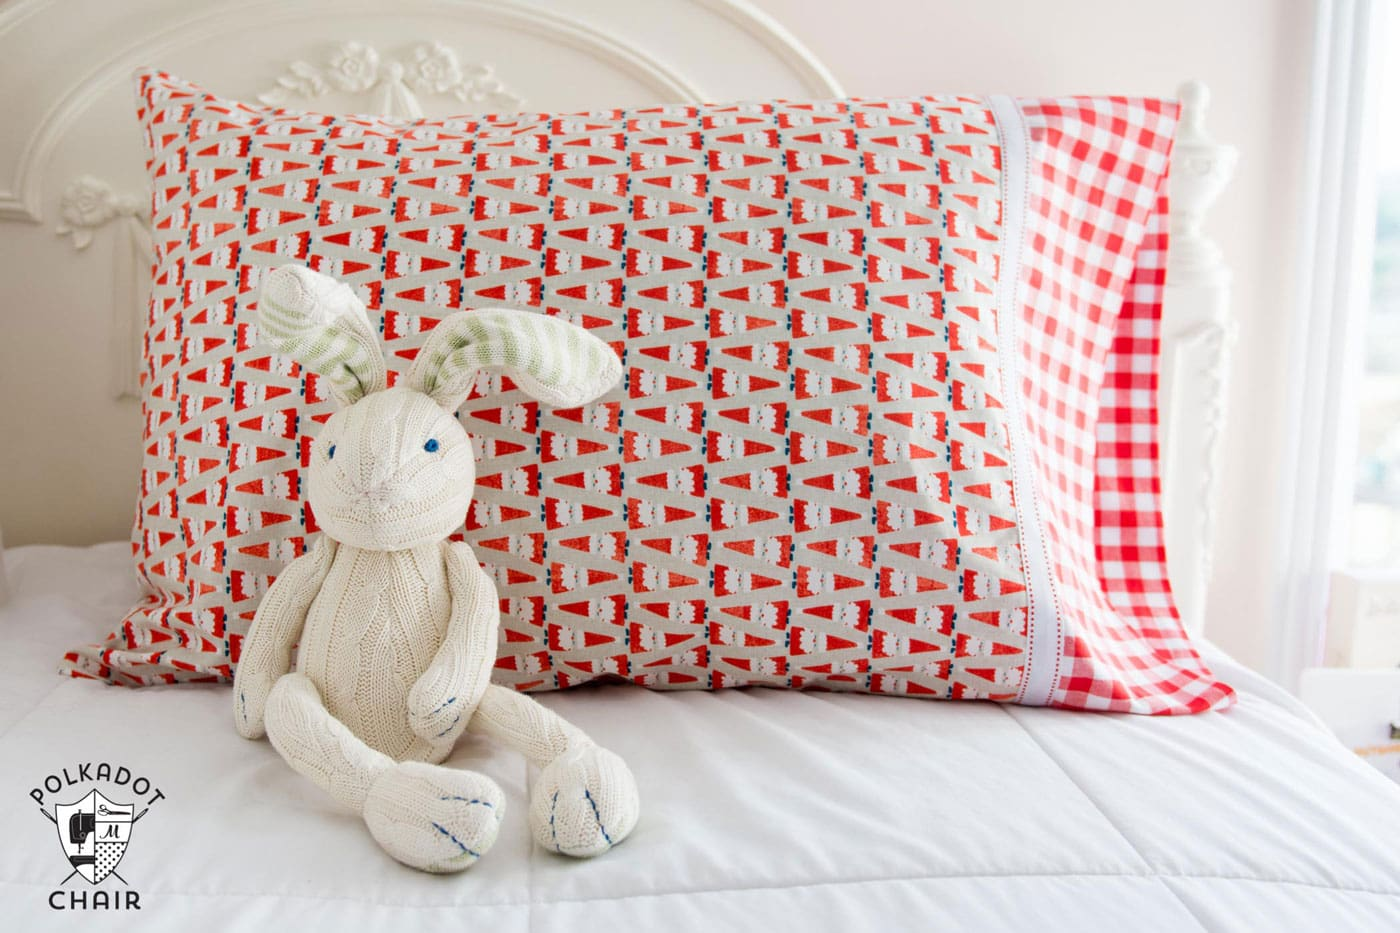 bunny and pillowcase on bed